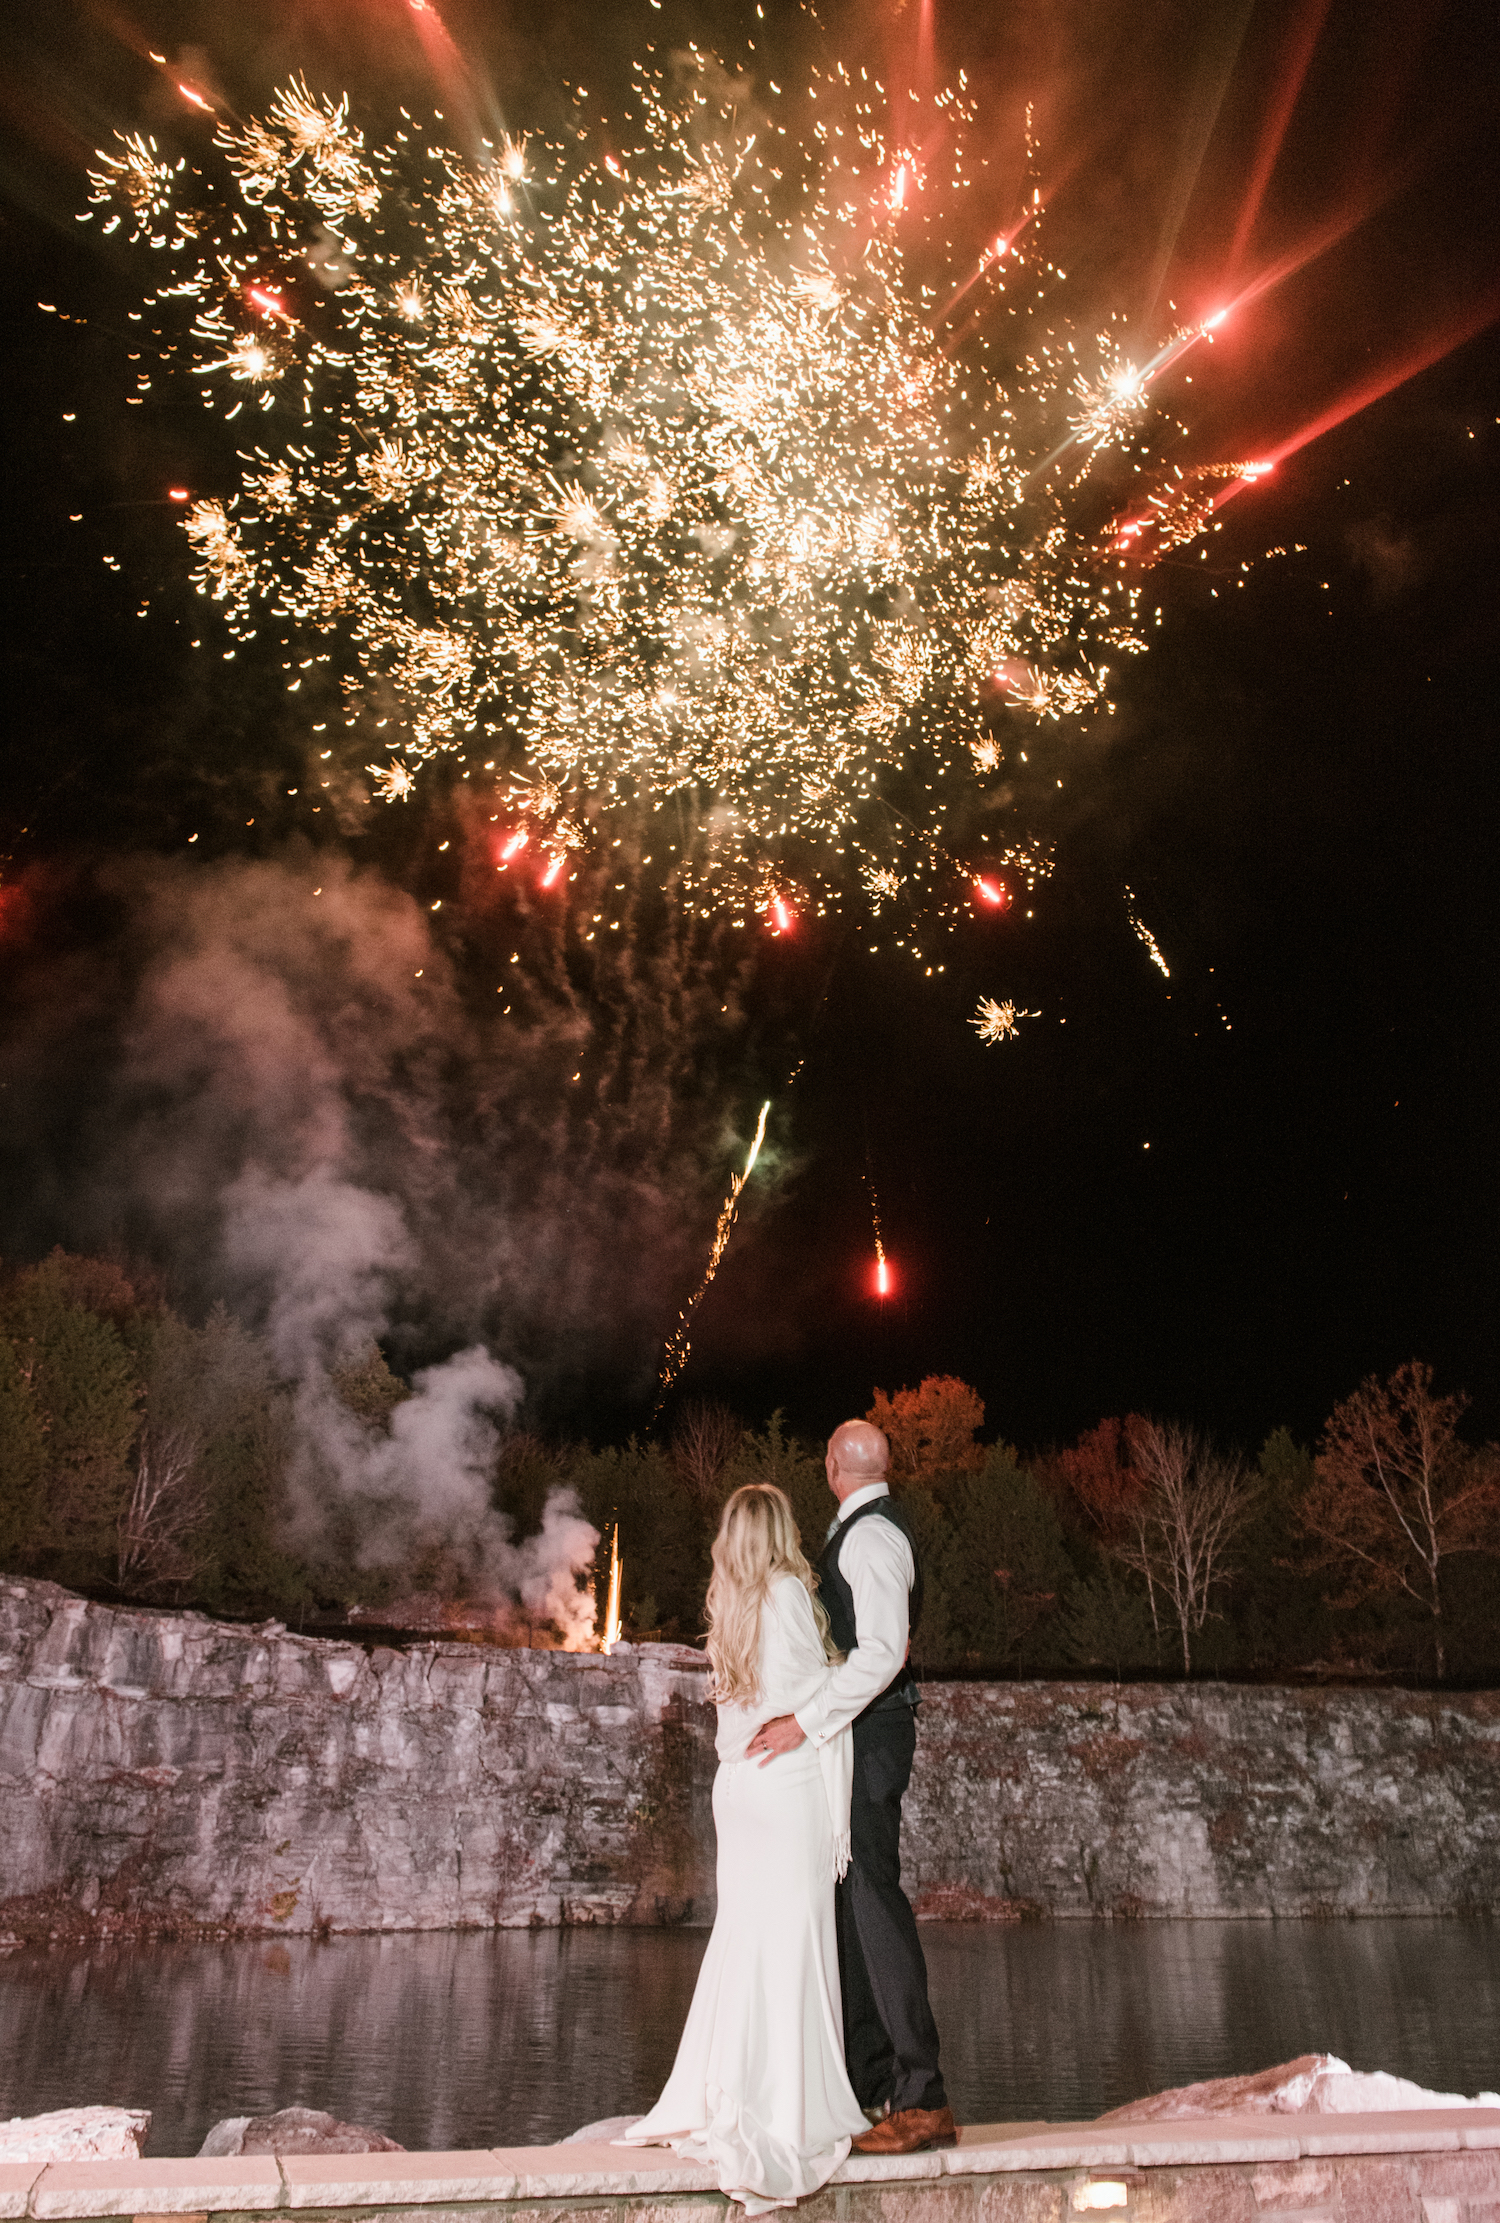 Wedding Fireworks captured by Shelby Rae Photographs on Nashville Bride Guide